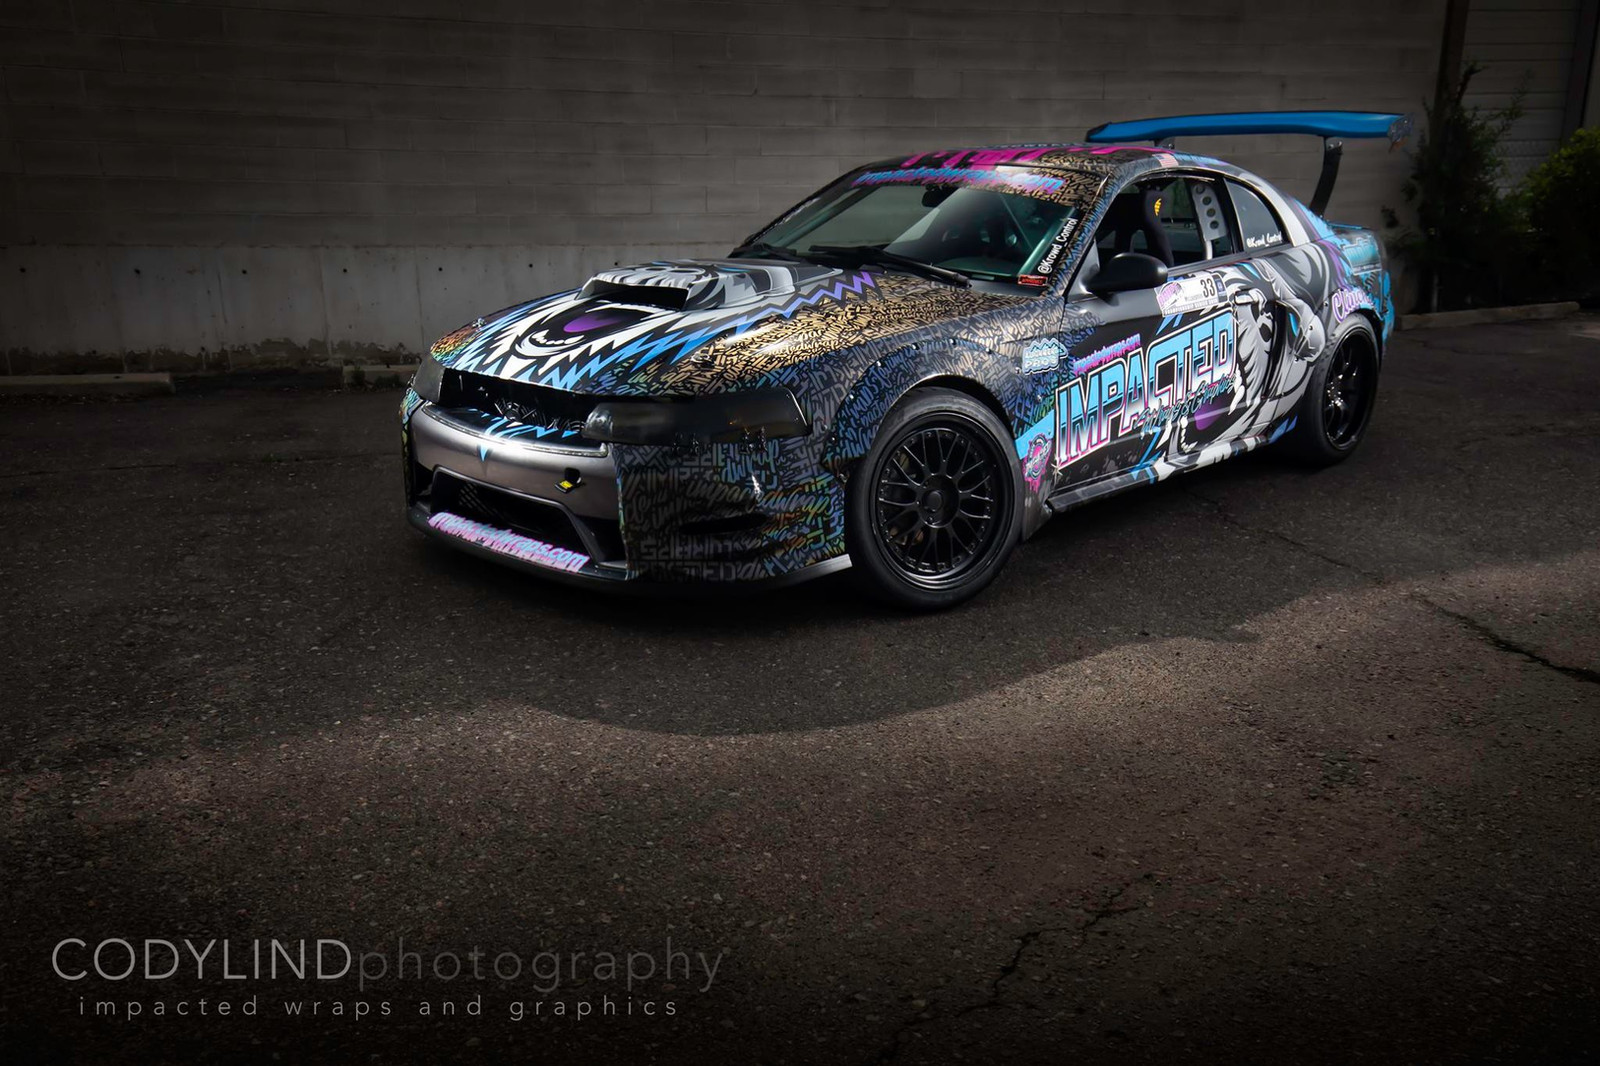 race car graphics with custom livery